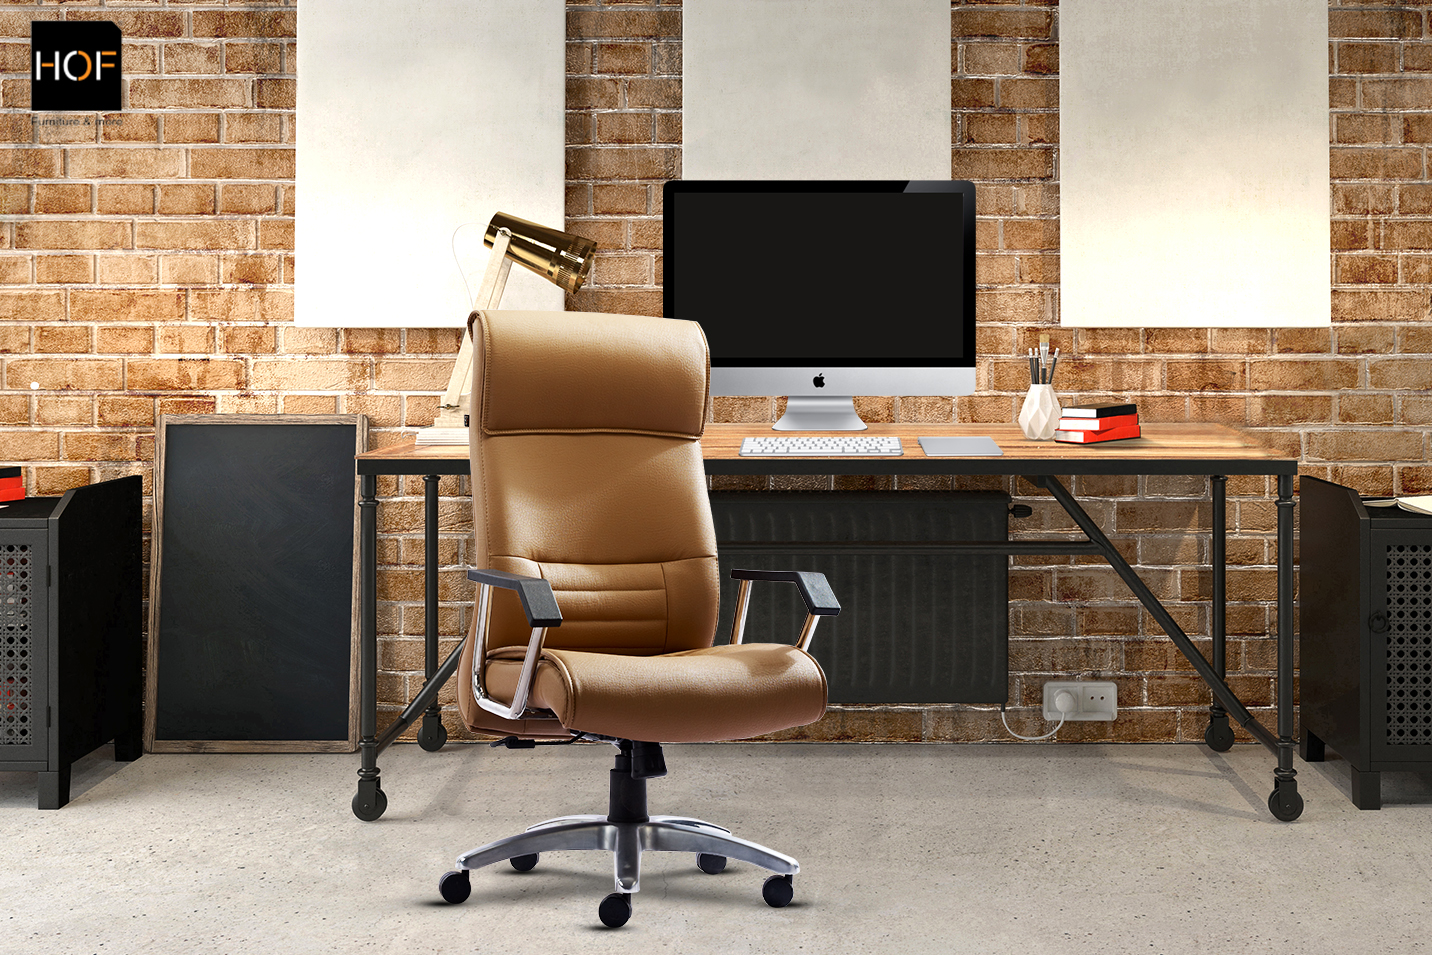 Buy Office Chairs Online How To Buy A Good High Back Leather Chair For Ceo Office